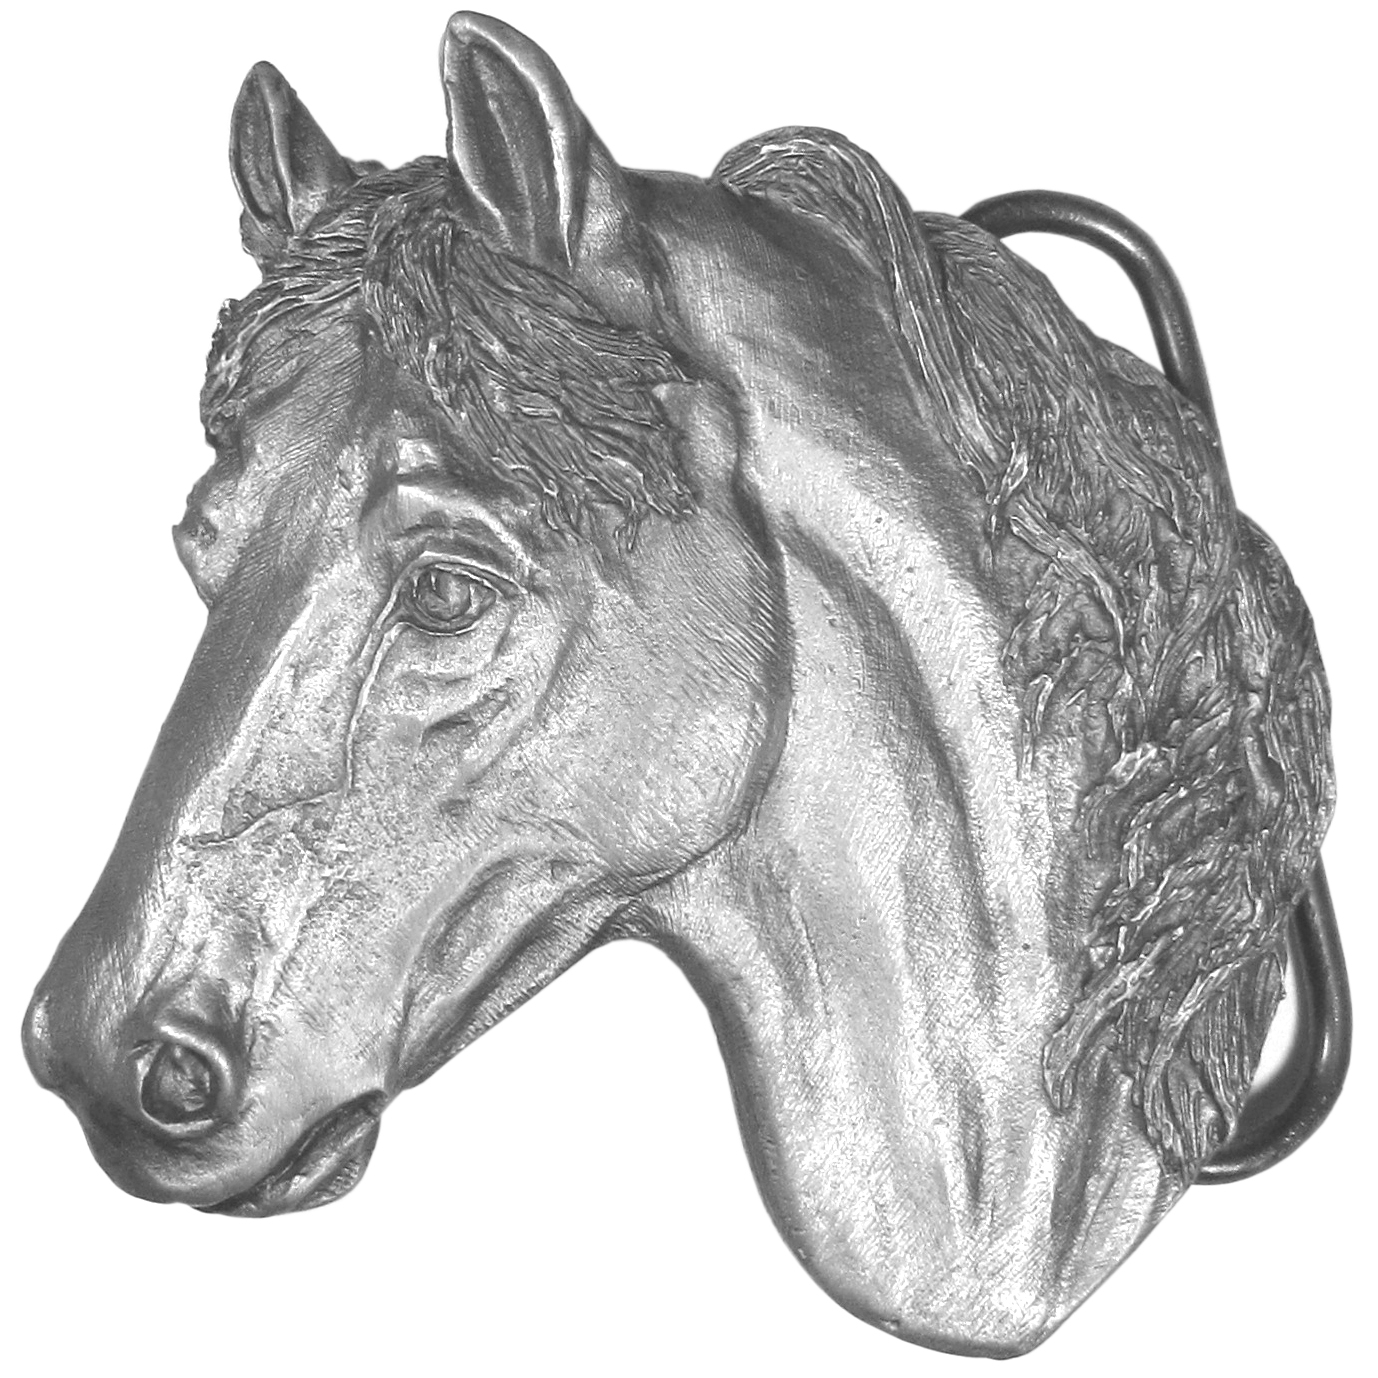 "Horse Antiqued Belt Buckle - ""For the horse lover, this buckle is shaped like a horse's head and has intricate detail.  This beautiful buckle is made of fully cast metal with a standard bale that fits up to 2"""" belts.  Siskiyou's unique buckle designs often become collectors items and are unequaled in craftsmanship.  Made in the USA."""